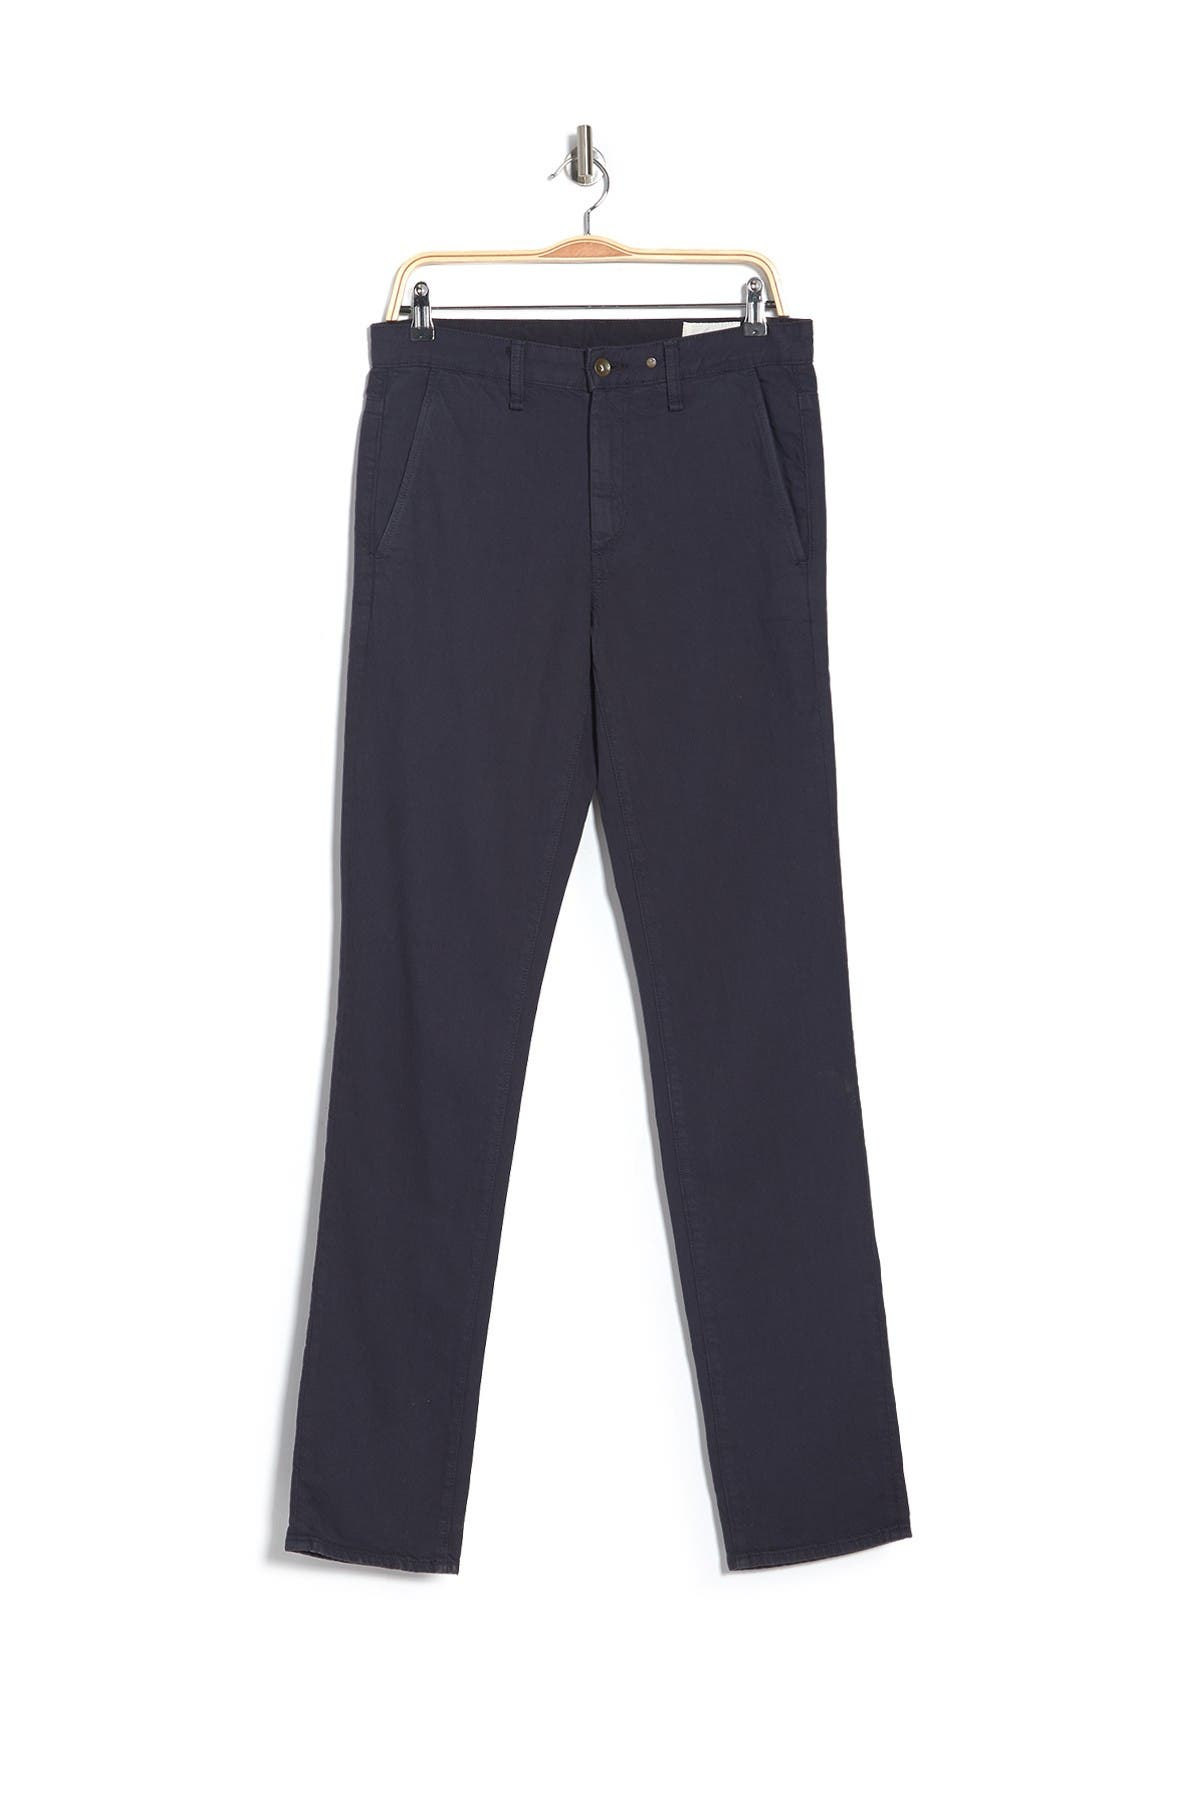 Image of Rag & Bone Fit 2 Solid Chino Pants